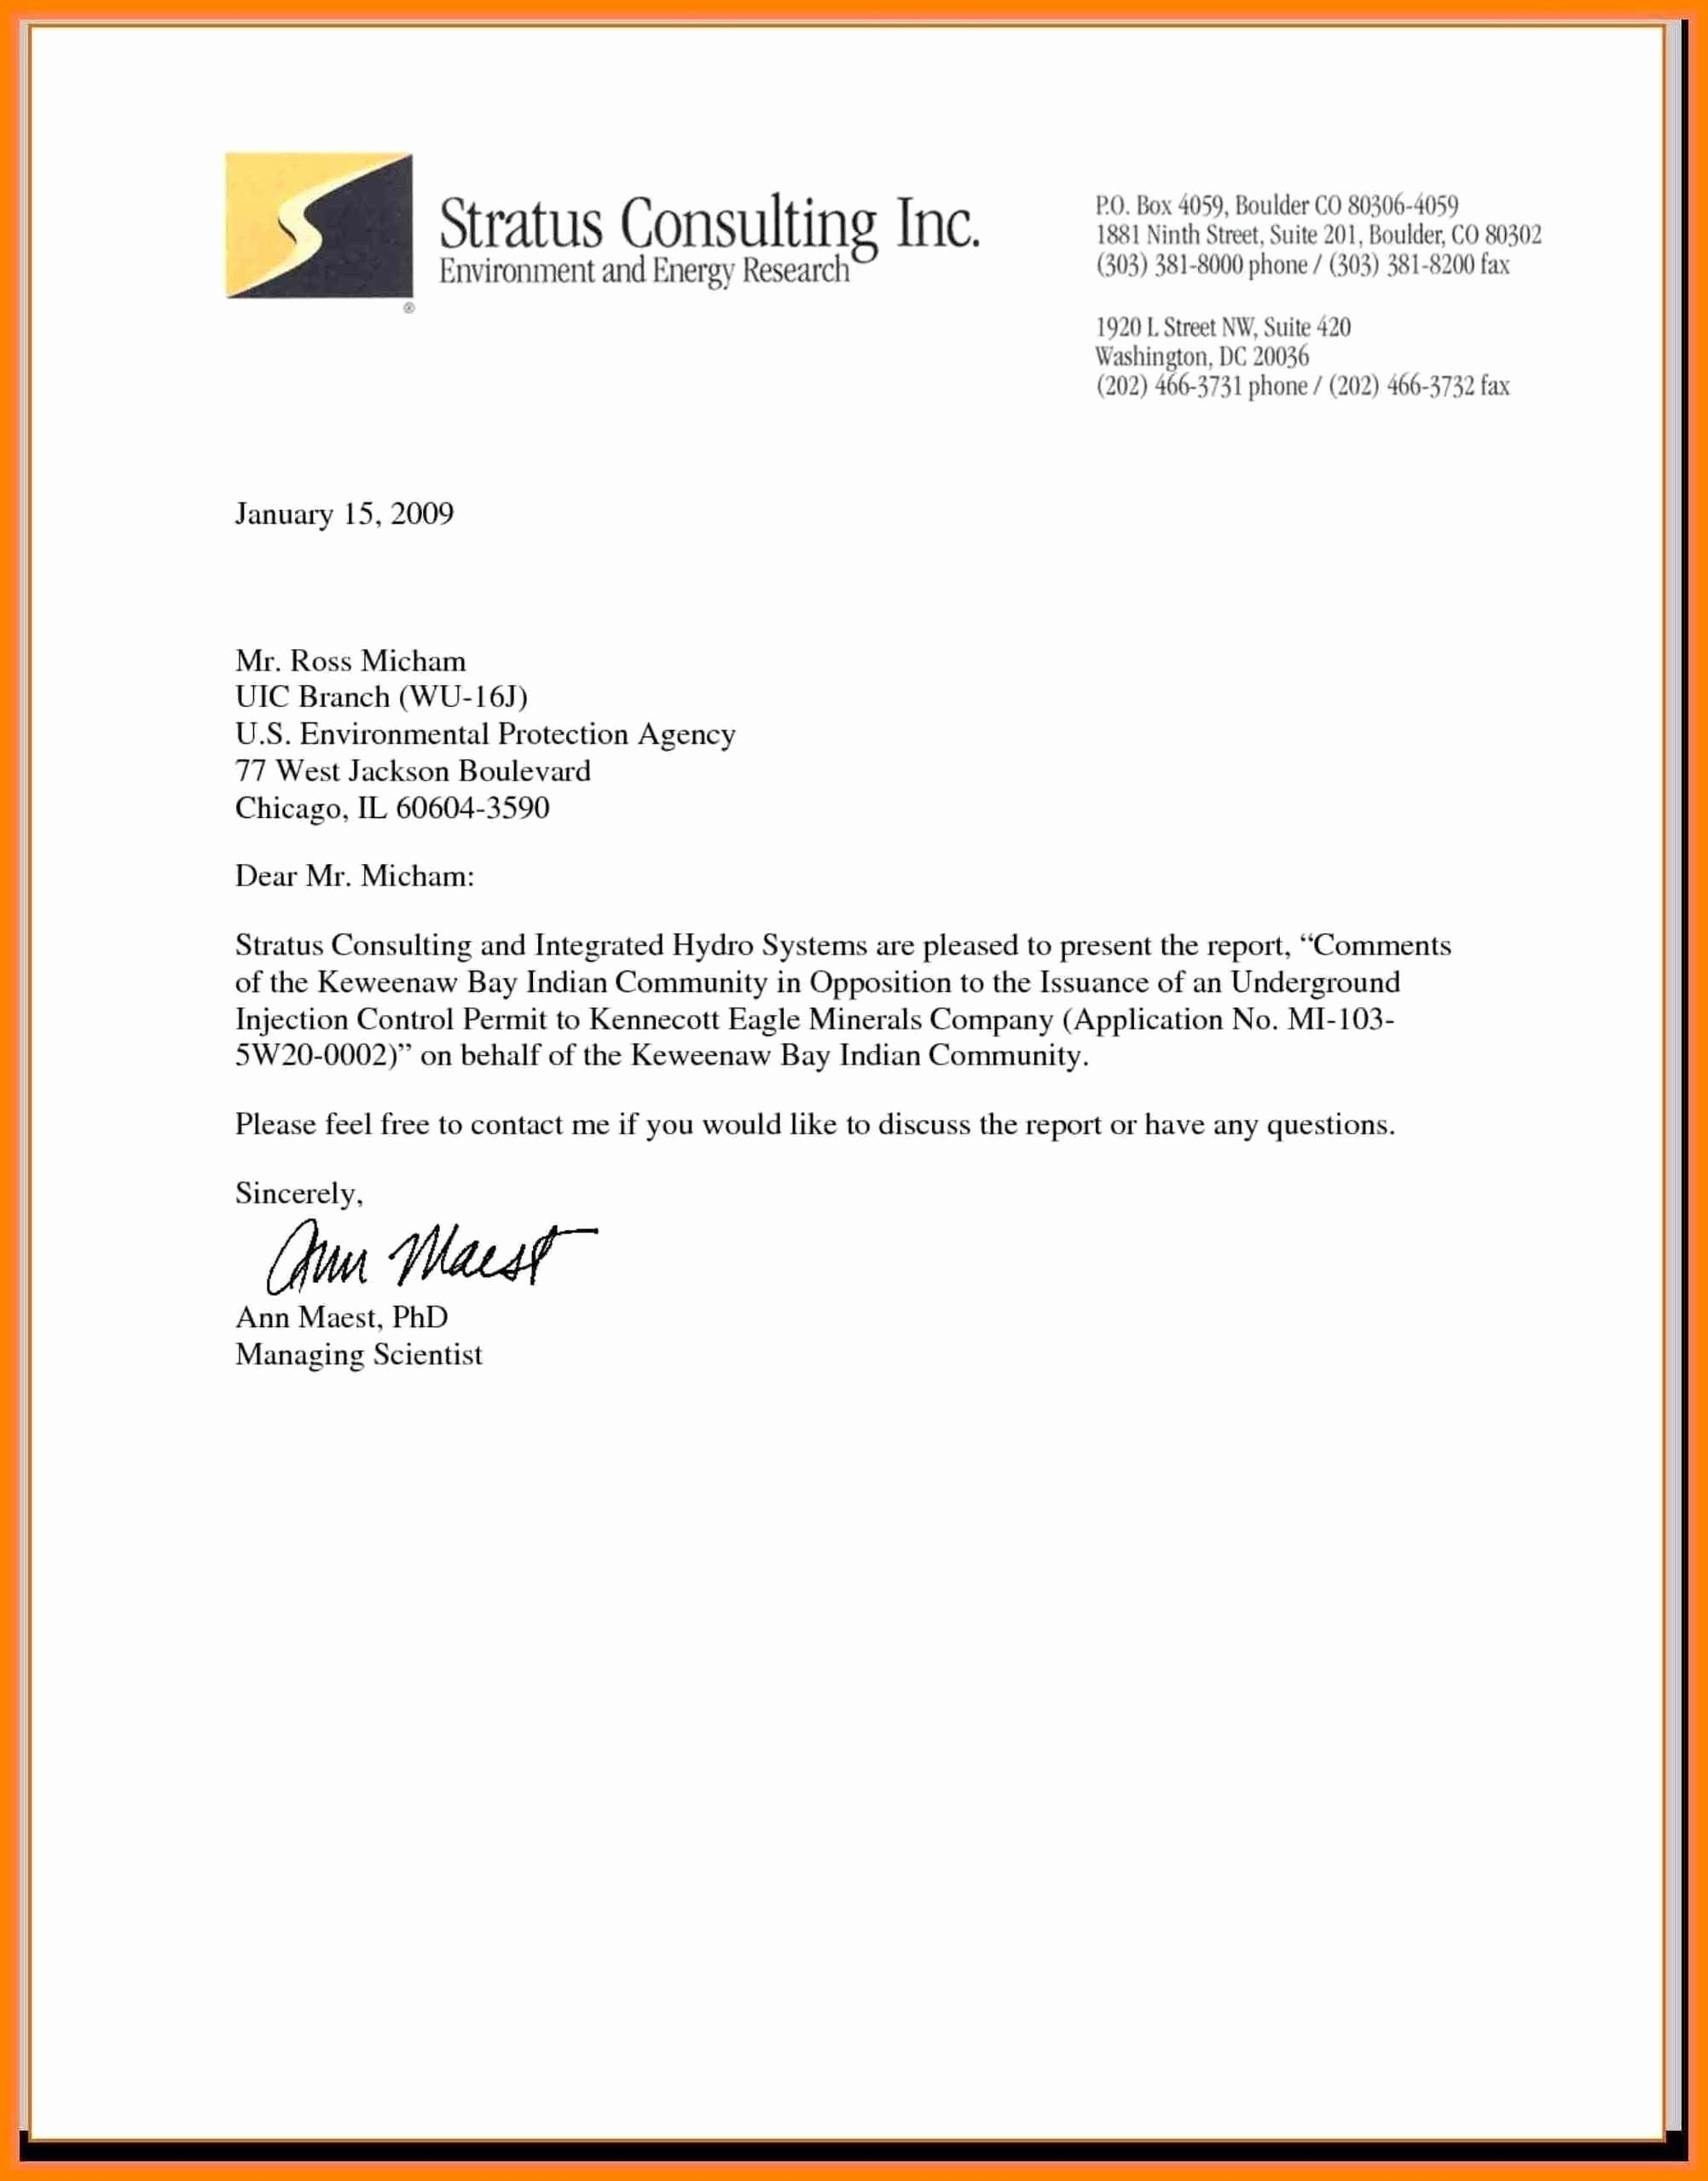 Business Letter Template Word Luxury Business Letterhead format